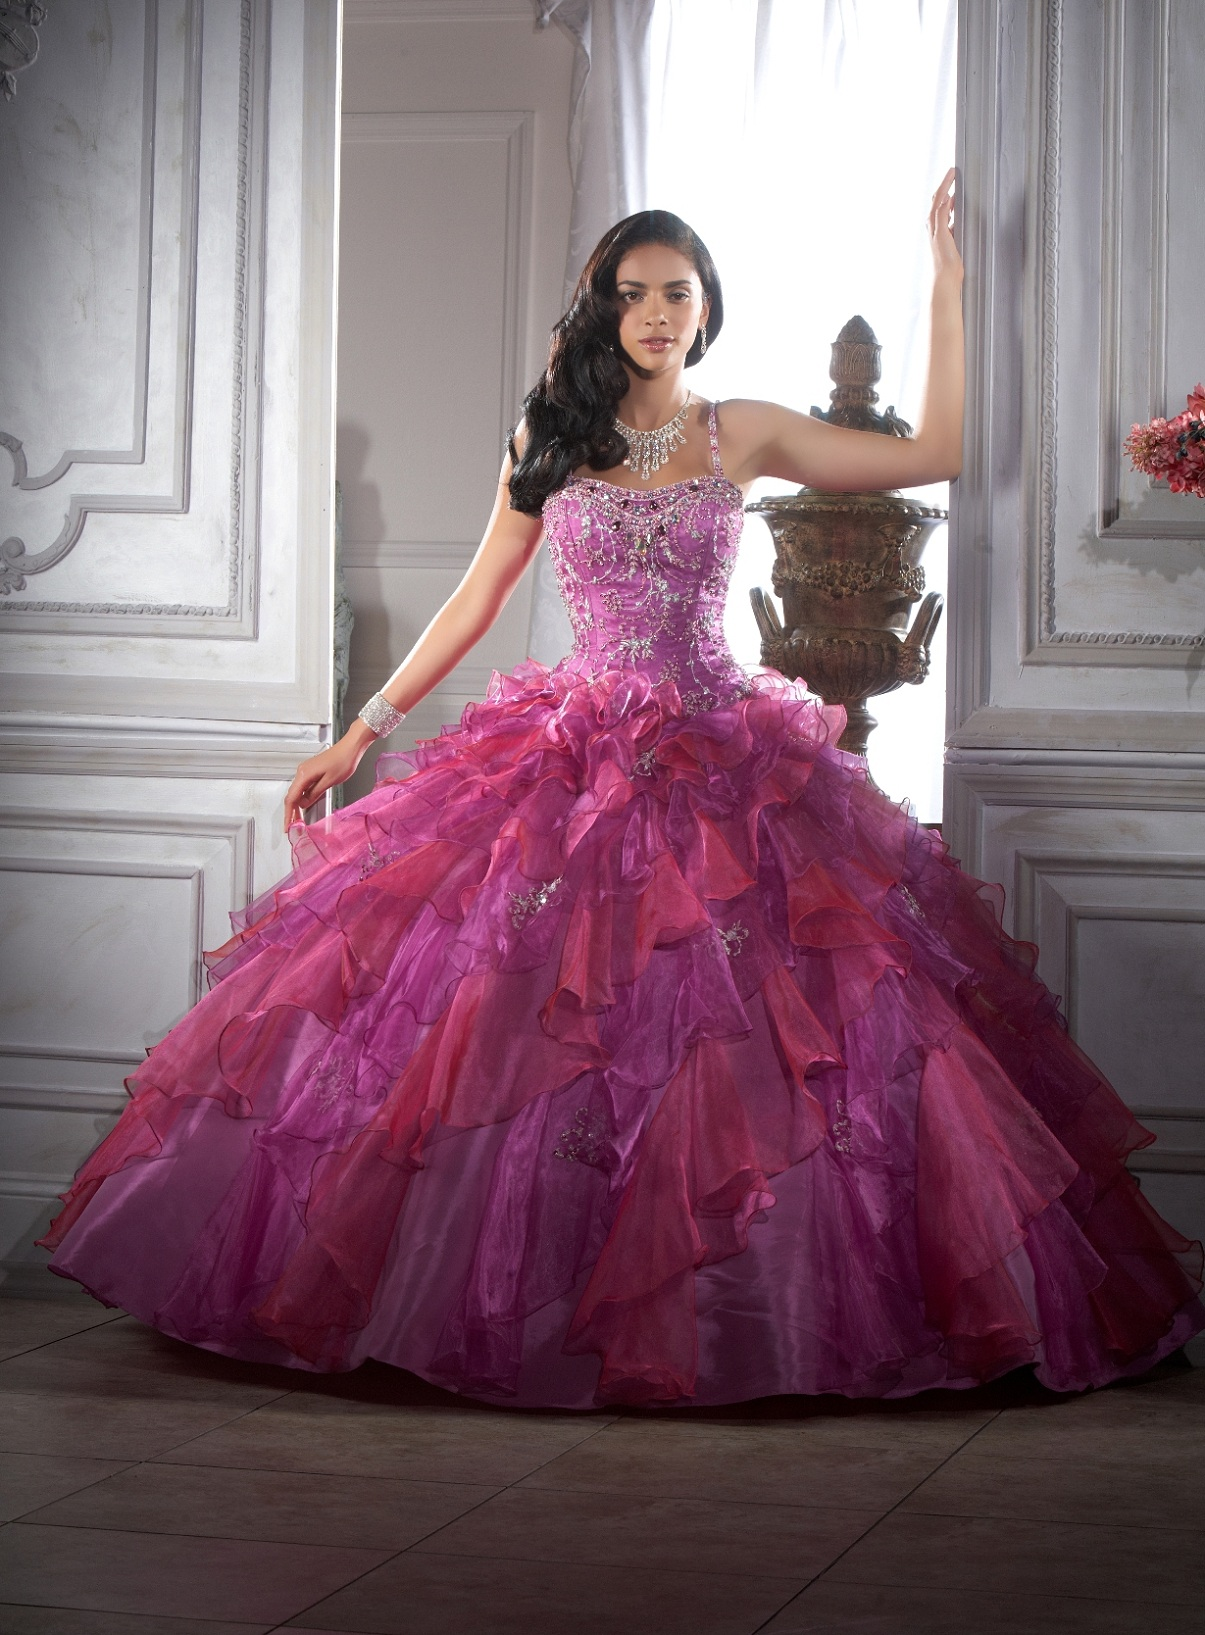 Plus Size Quinceanera Dresses Houston Tx 49